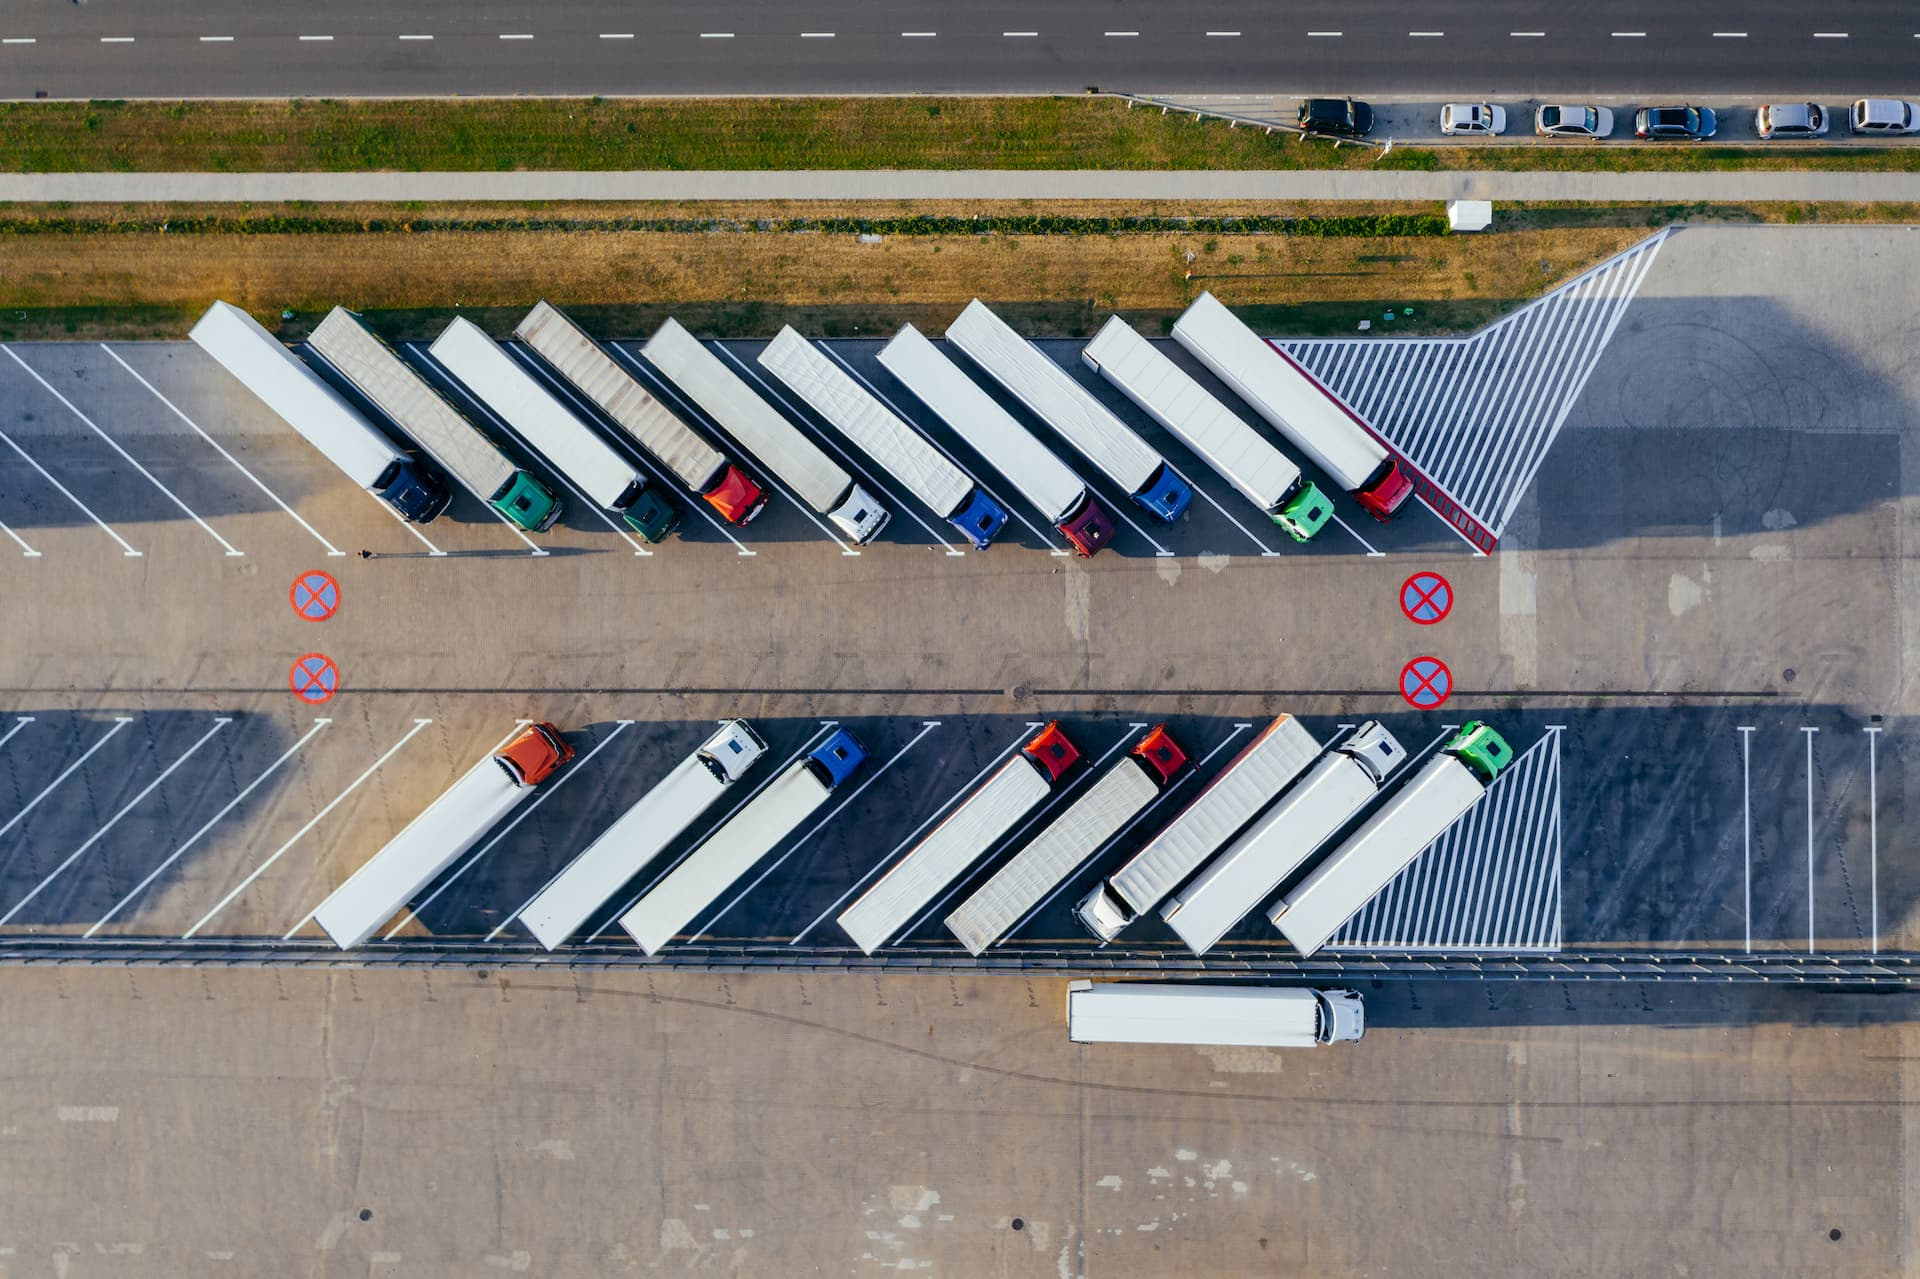 Canva - Aerial Photography Of Trucks Parked (1)